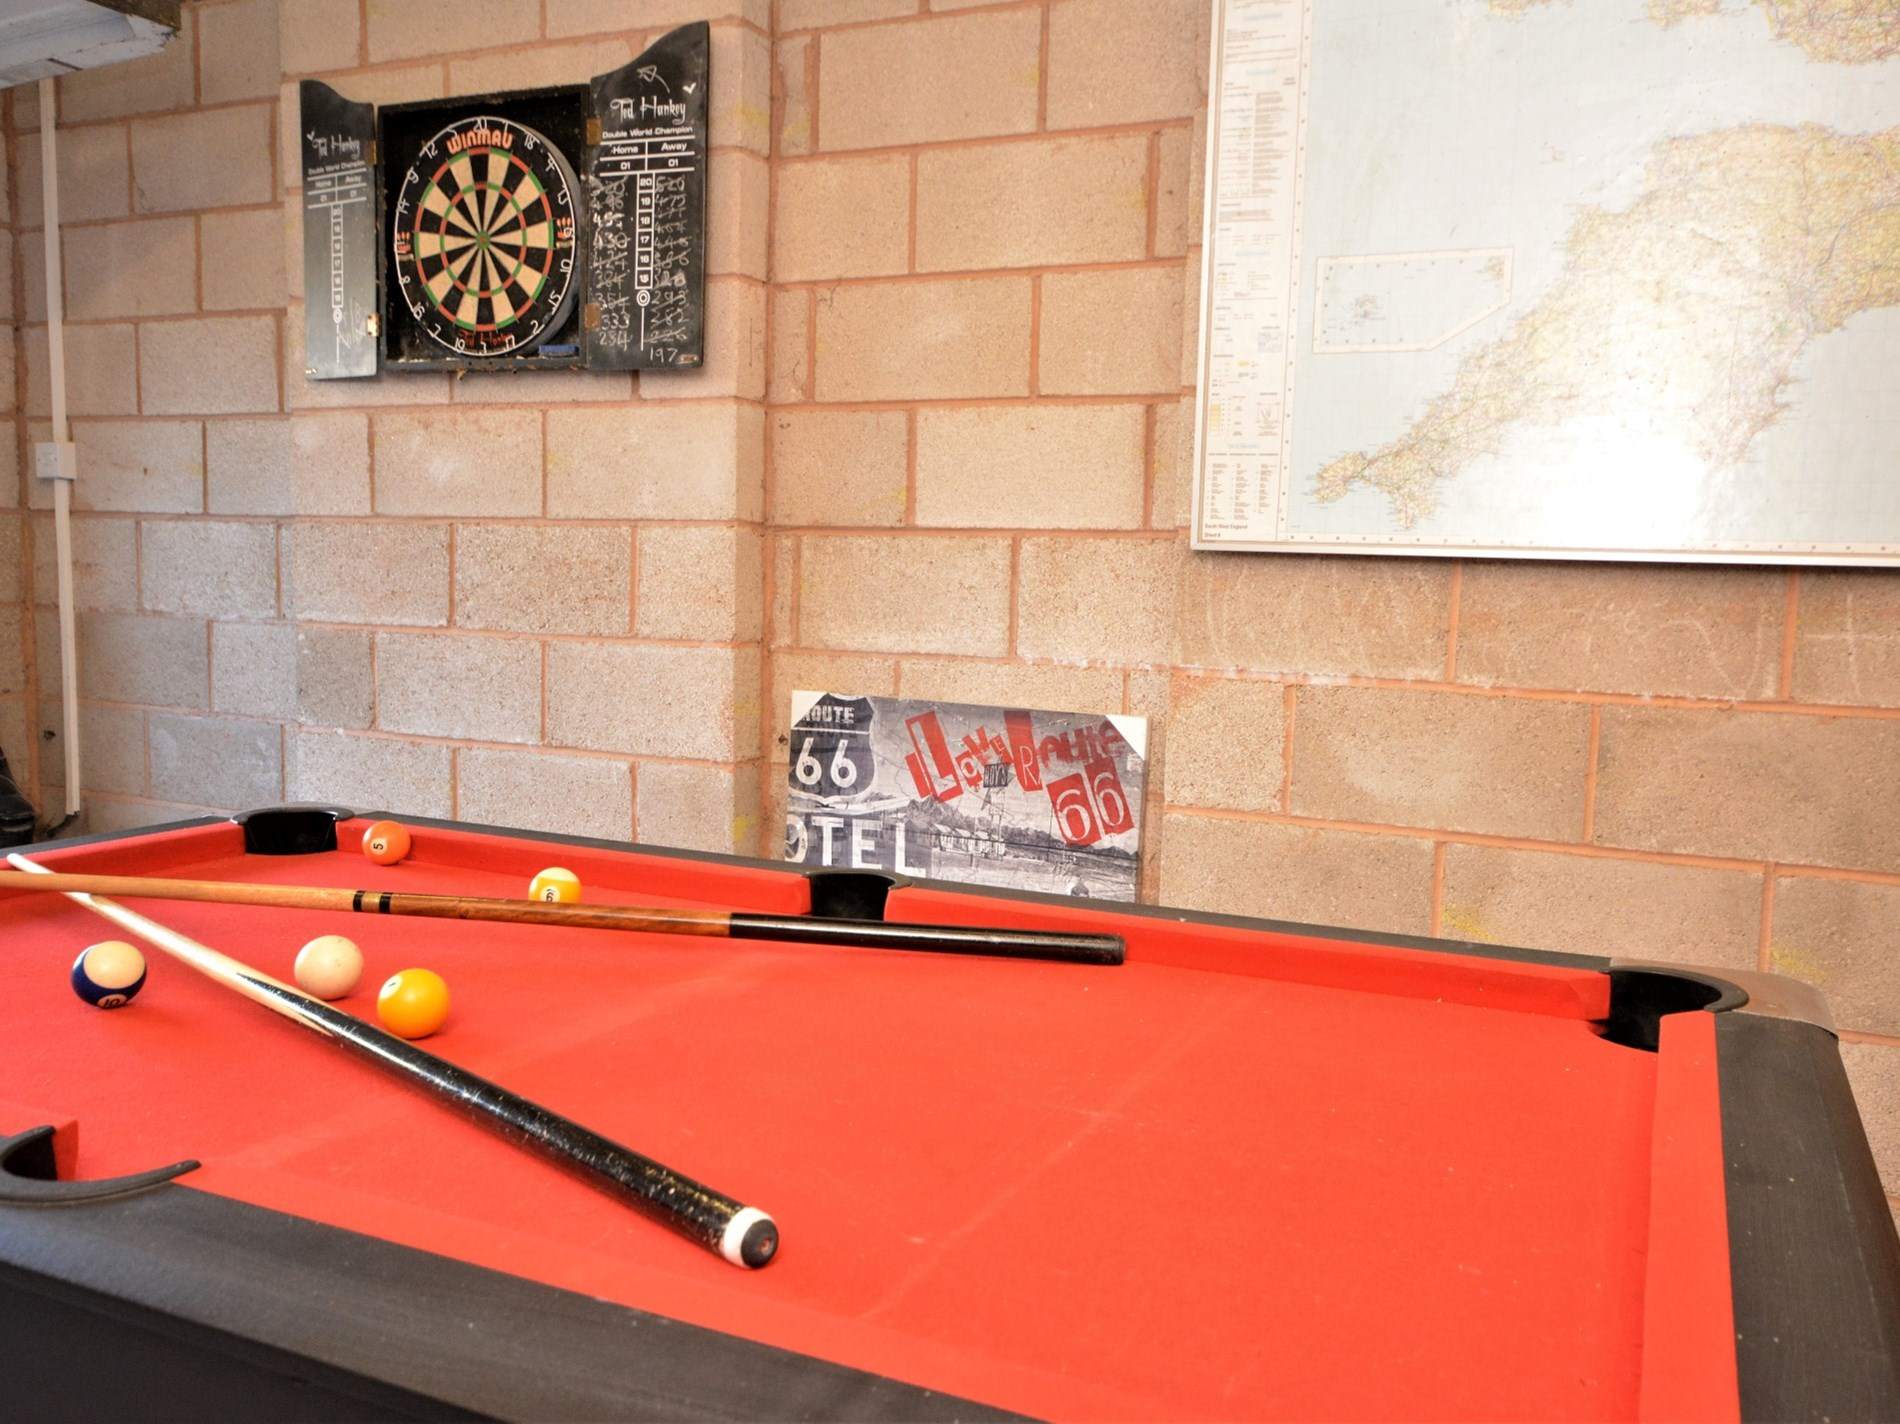 A game of pool or darts for those rainy days